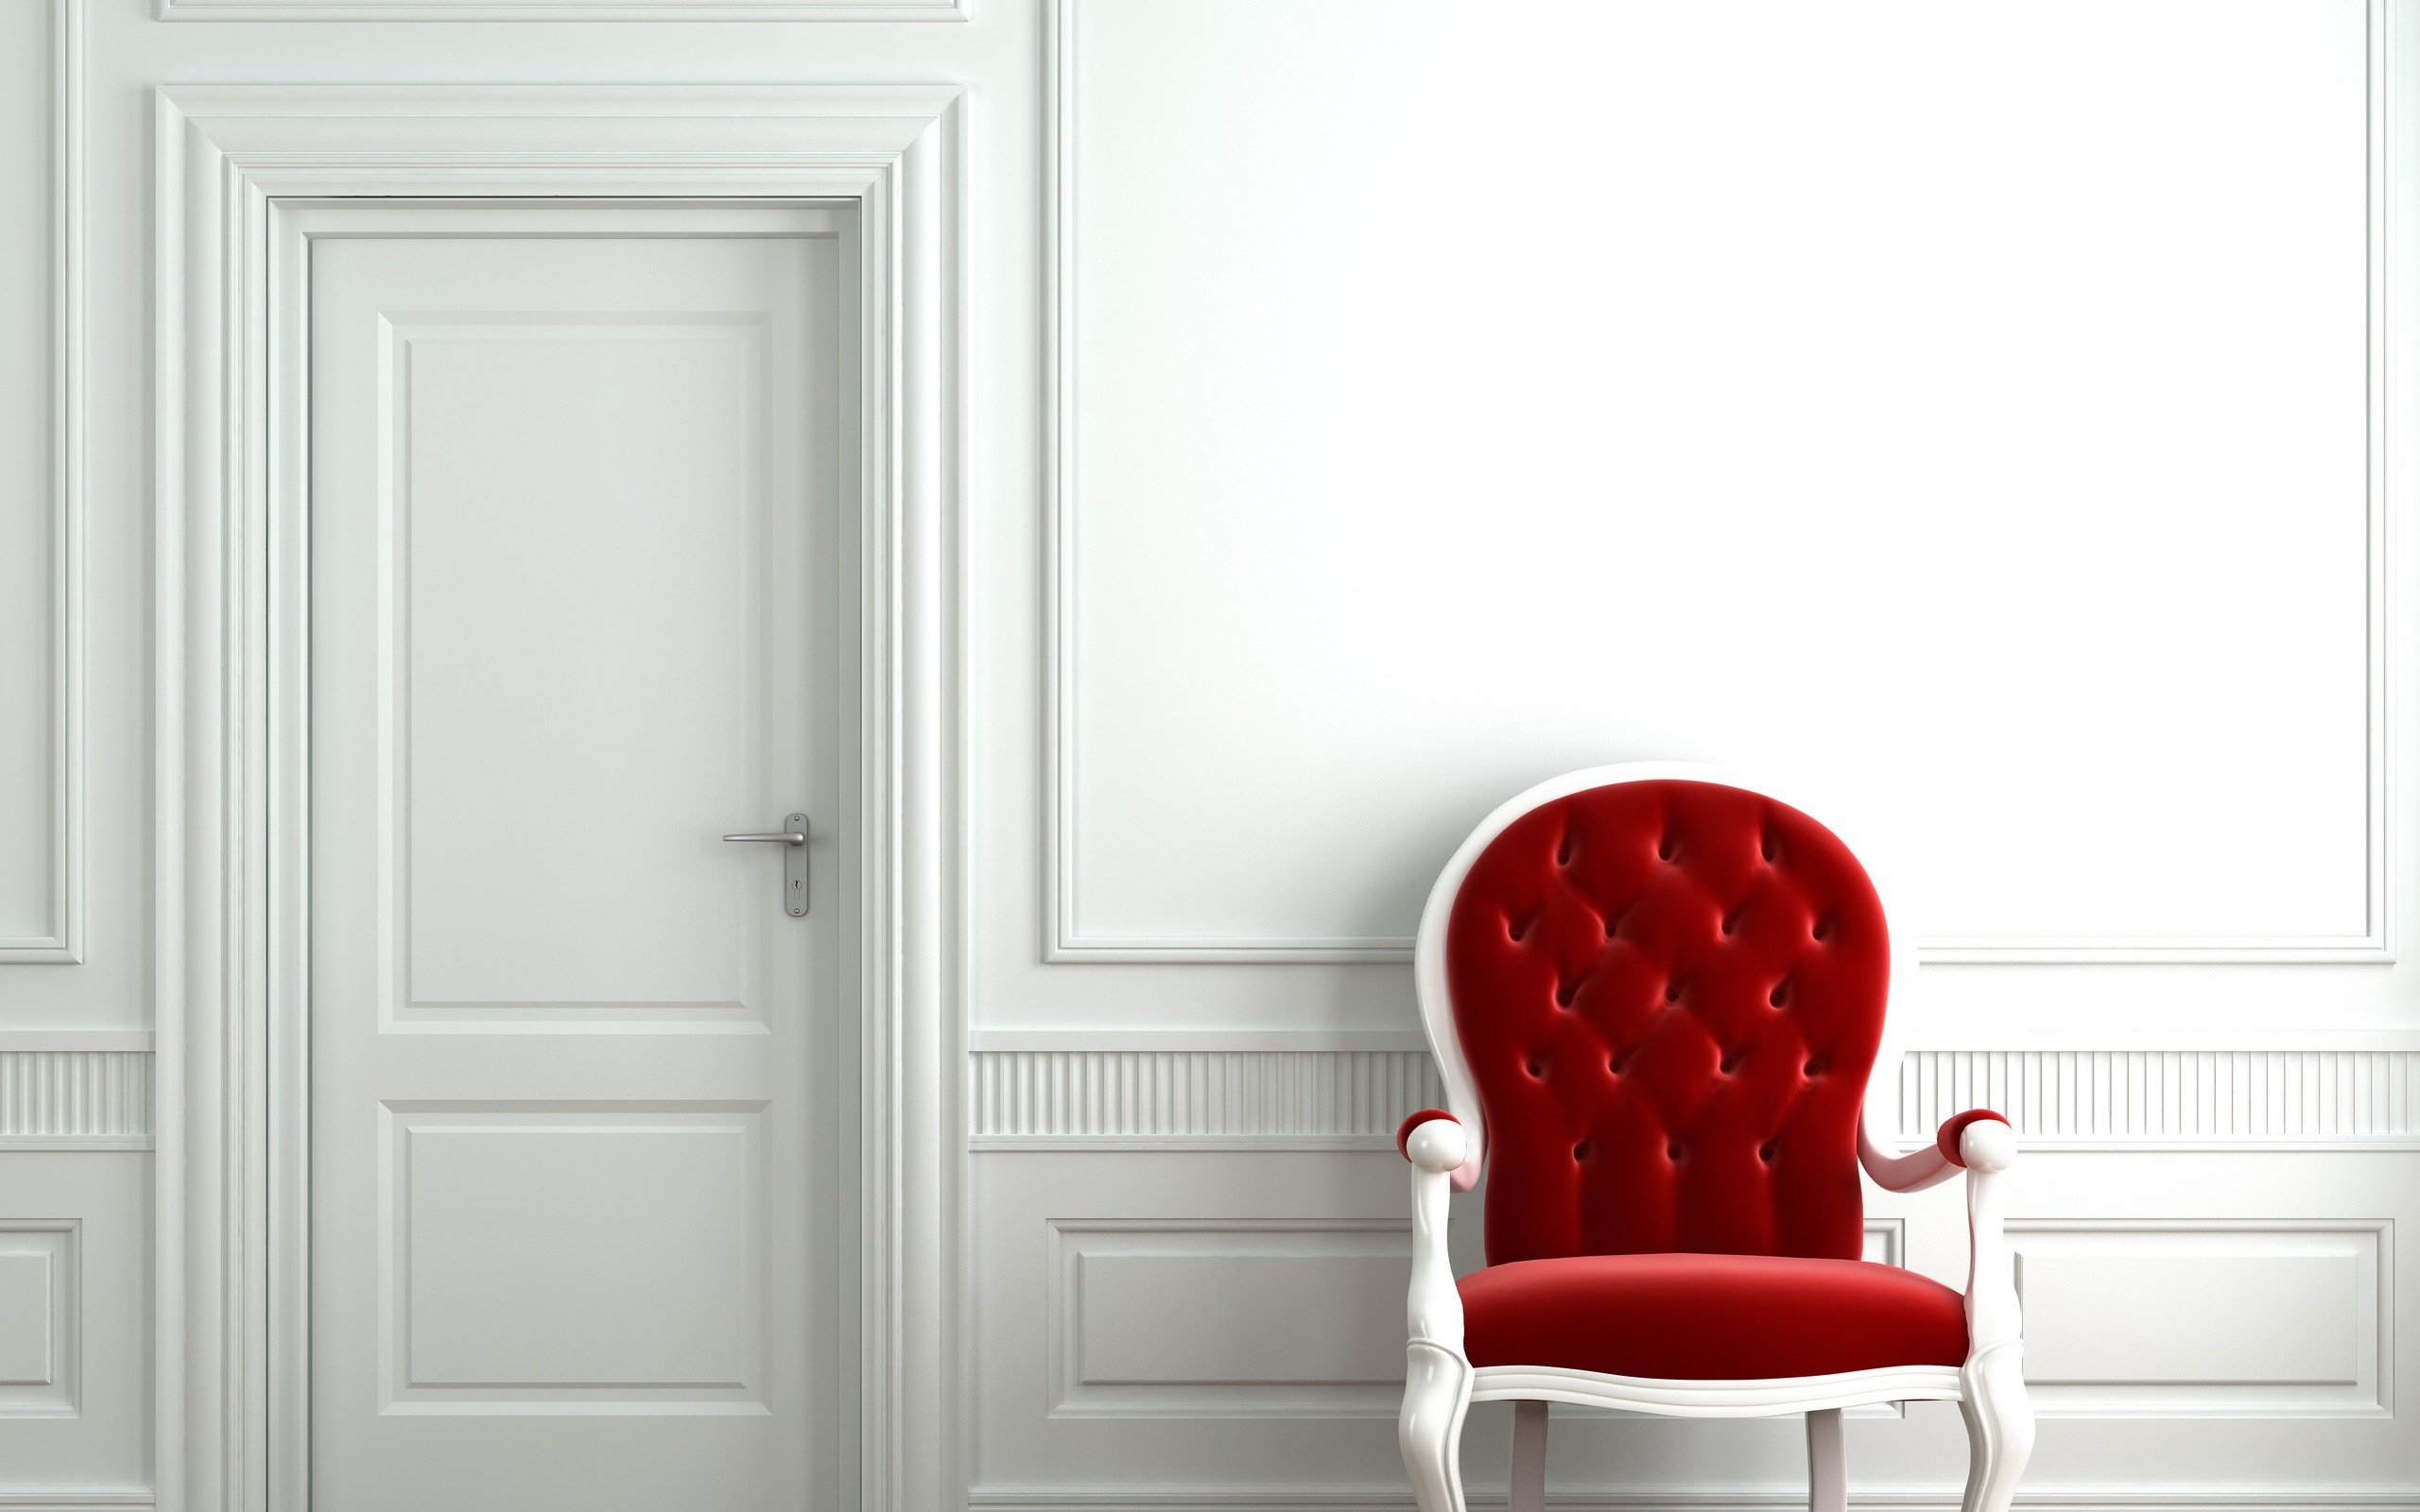 Architecture room chairs doors wallpaper | 2560x1600 | 252736 | WallpaperUP & Architecture room chairs doors wallpaper | 2560x1600 | 252736 ...